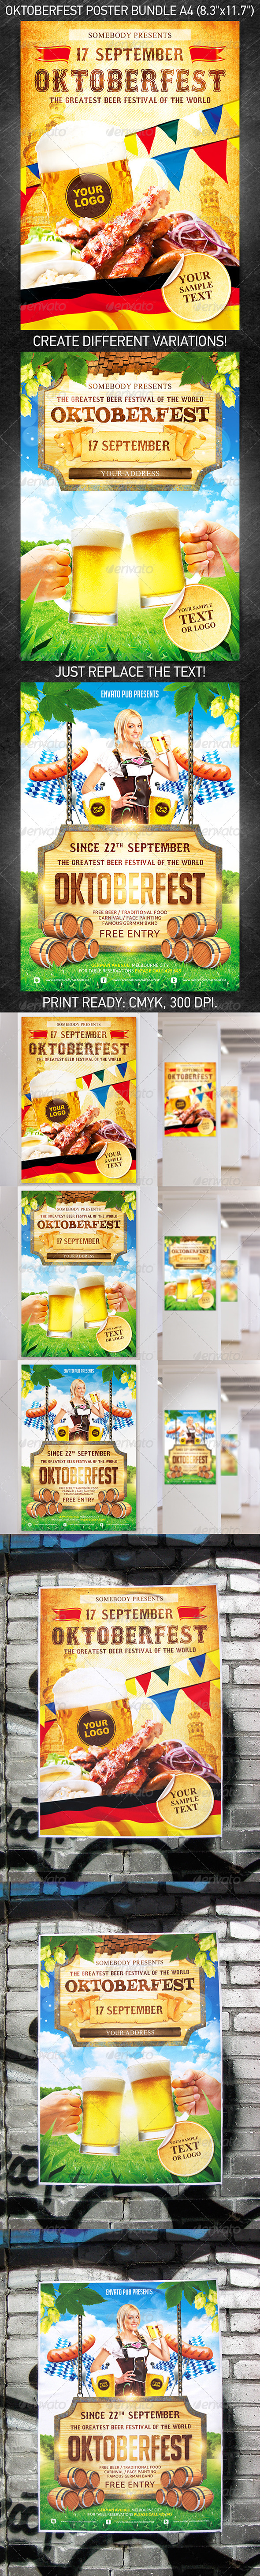 Oktoberfest Festival Poster Bundle - Holidays Events